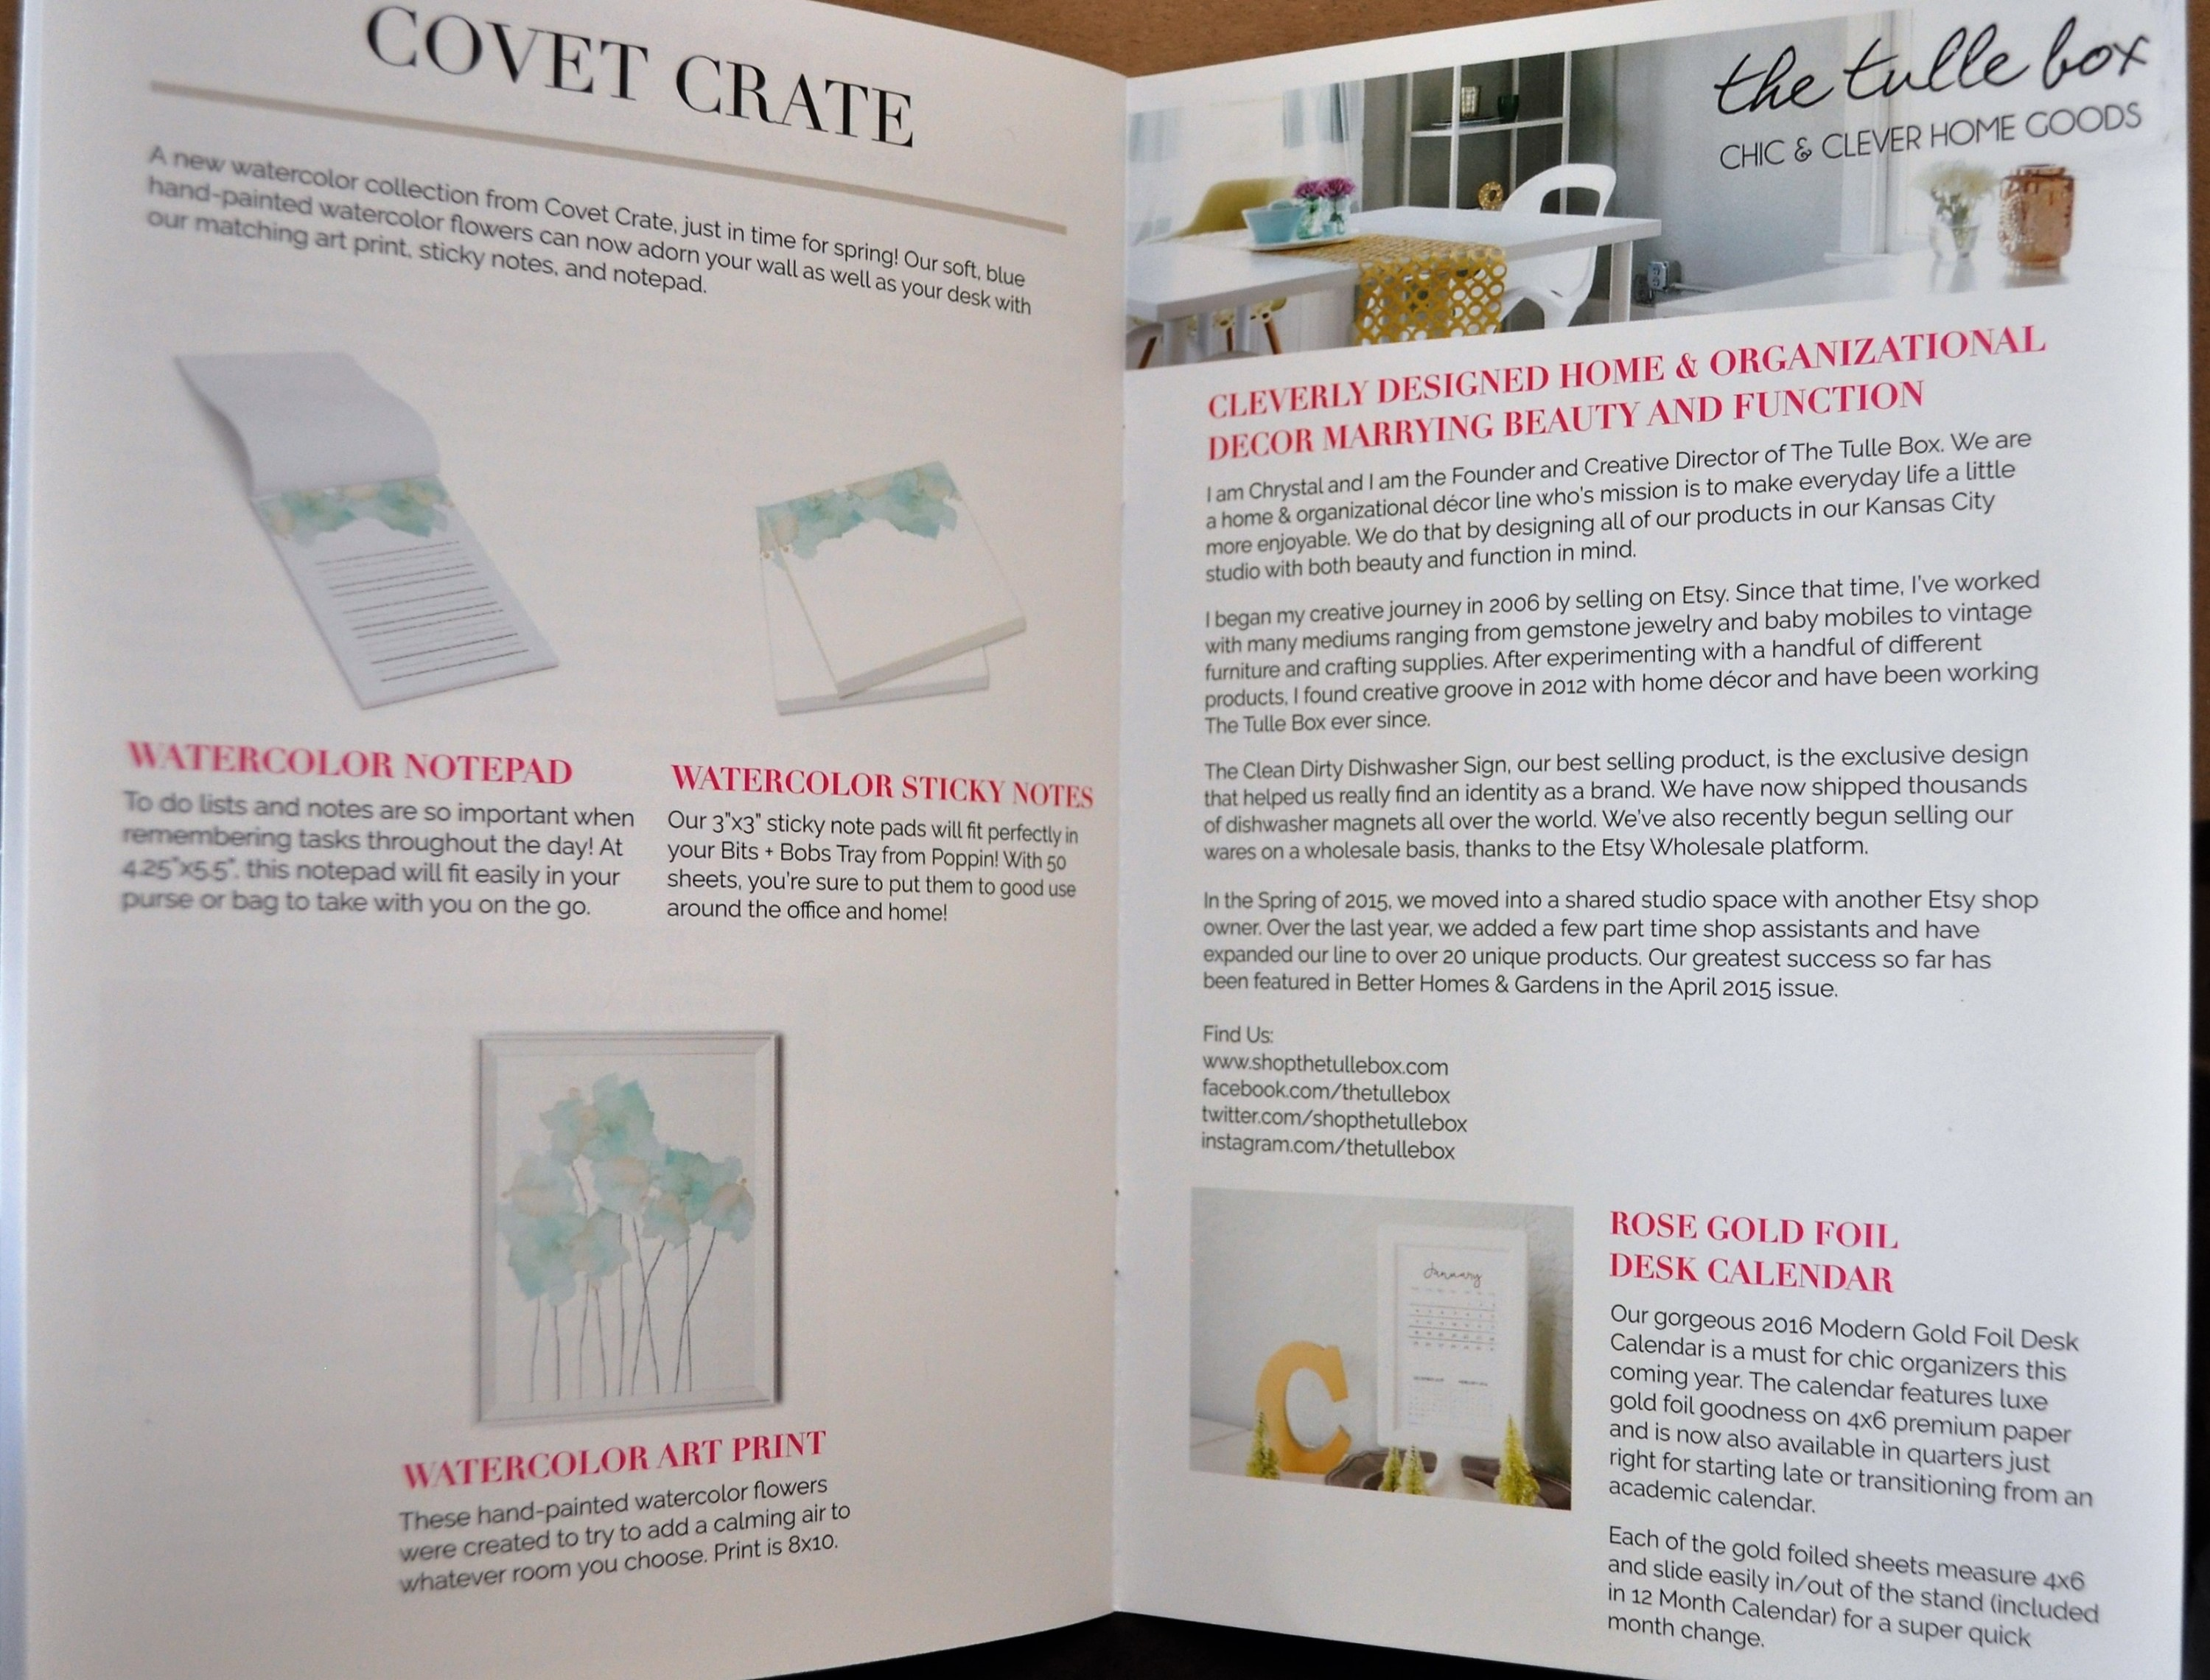 Covet Crate May 2016 Insert Page 9 and 10